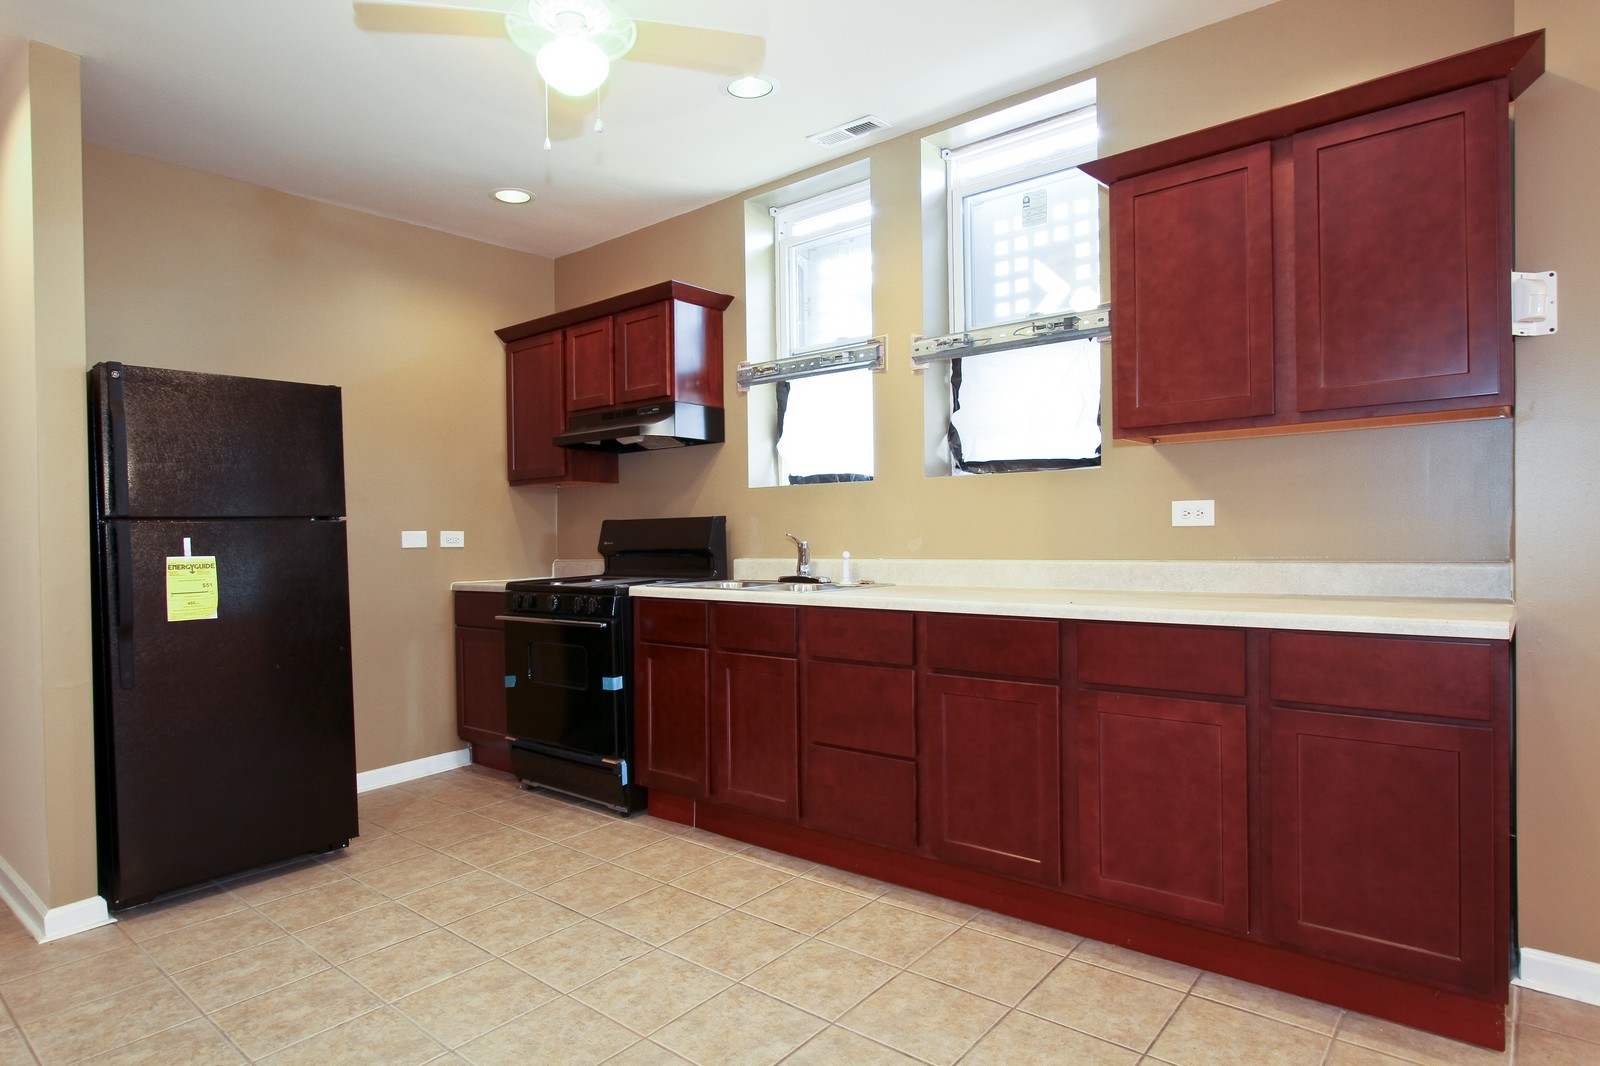 Real Estate Photography - 449 W 61st St, Chicago, IL, 60621 - Kitchen